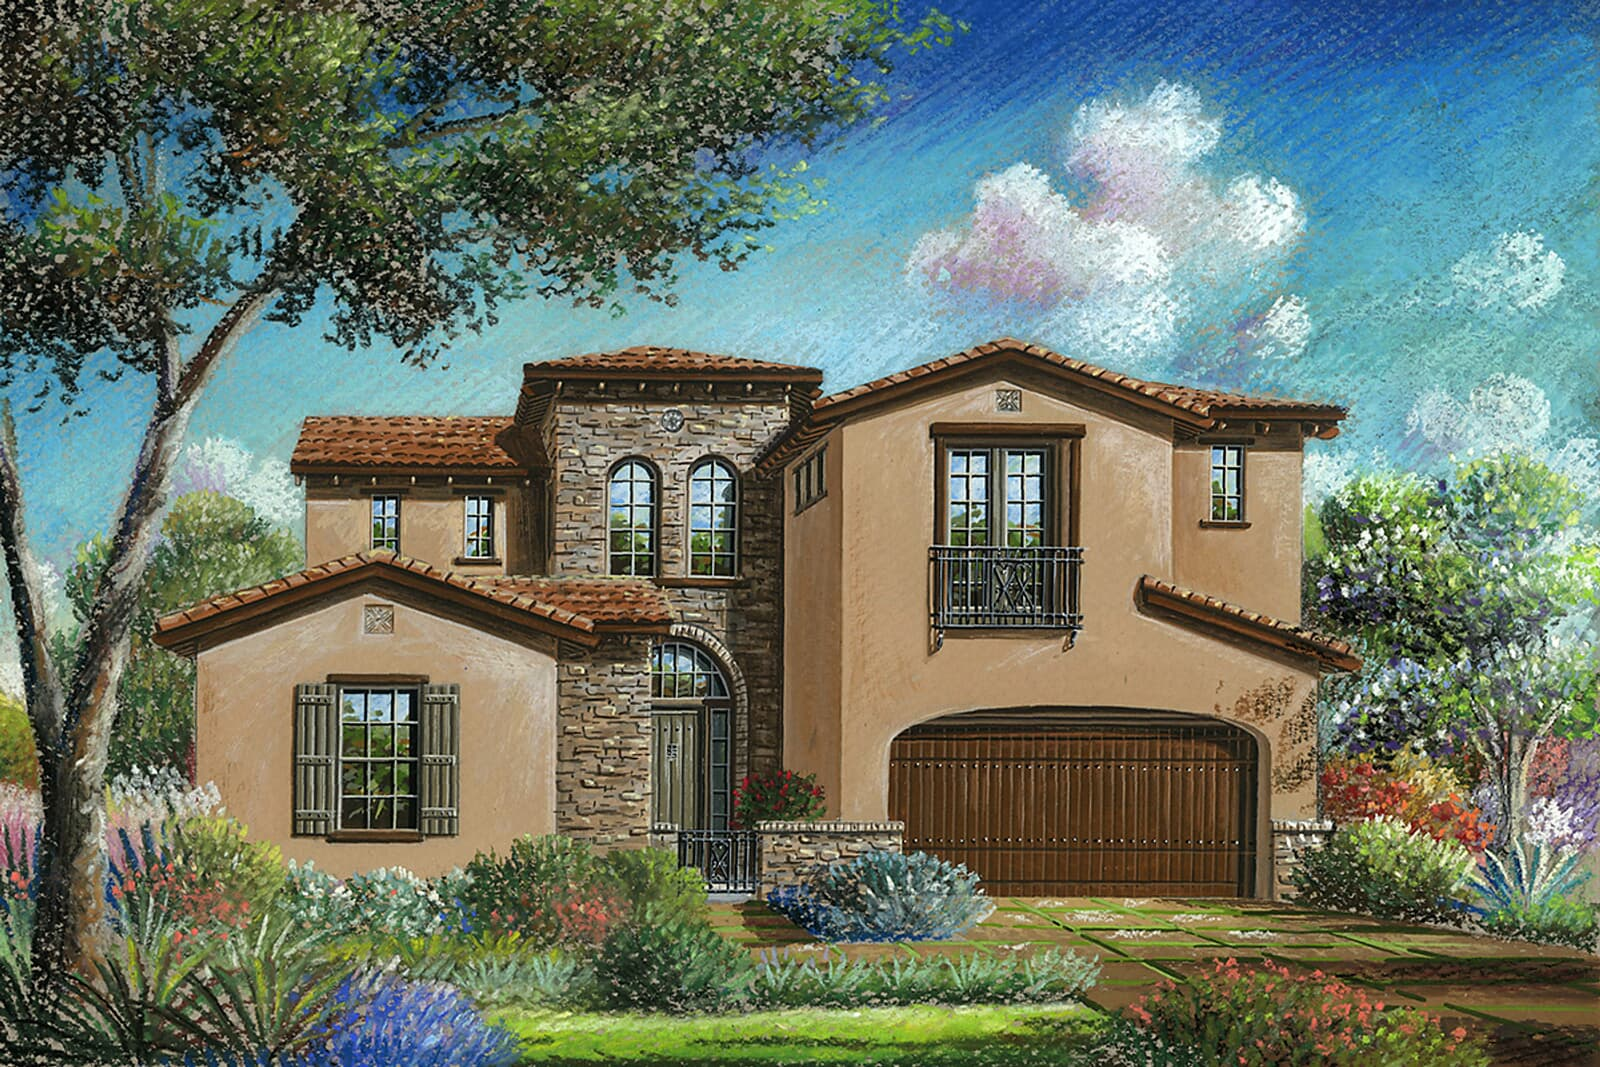 Residence 6BR Rendering | Crown Point at Stonebrae in Hayward, CA | Brookfield Residential